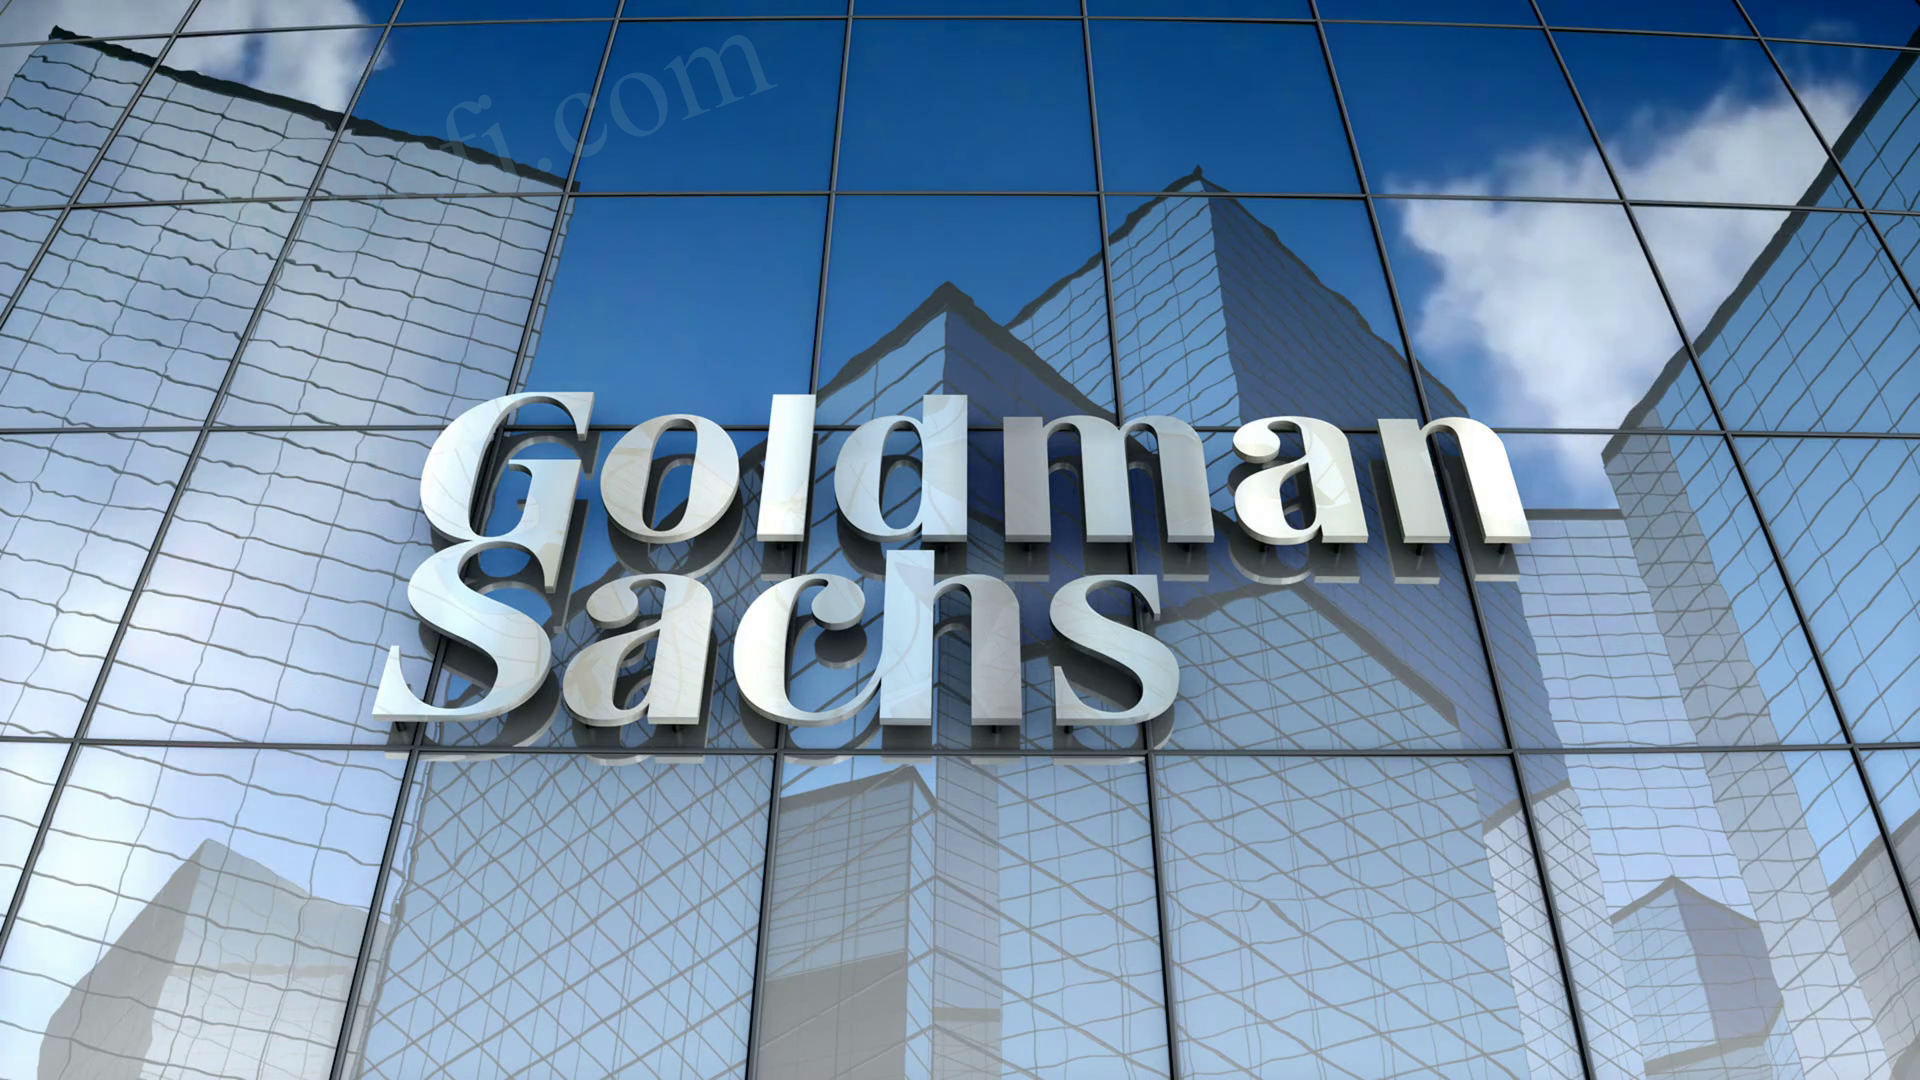 Goldman Sachs has revealed plans to expand its crypto business